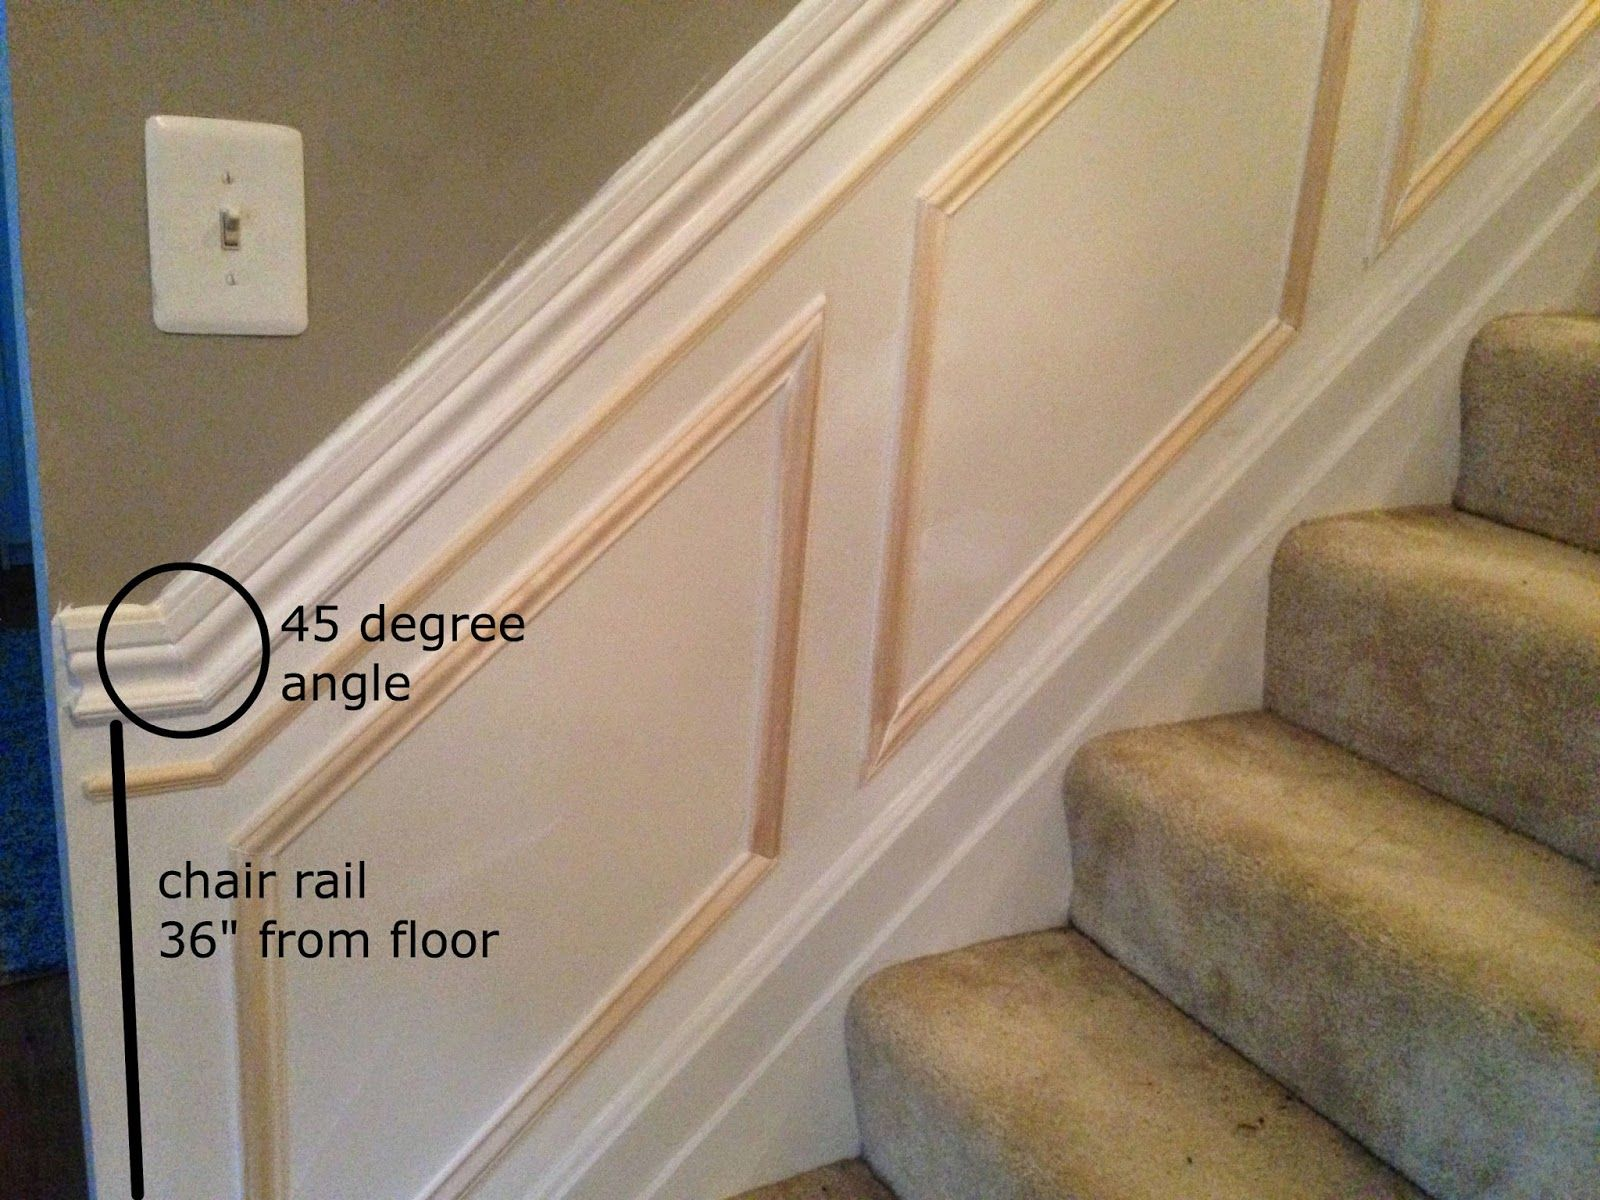 Pin By Gina Criswell Brooks On Stairs Moldings And Trim Frames On Wall Molding Design For Ceiling